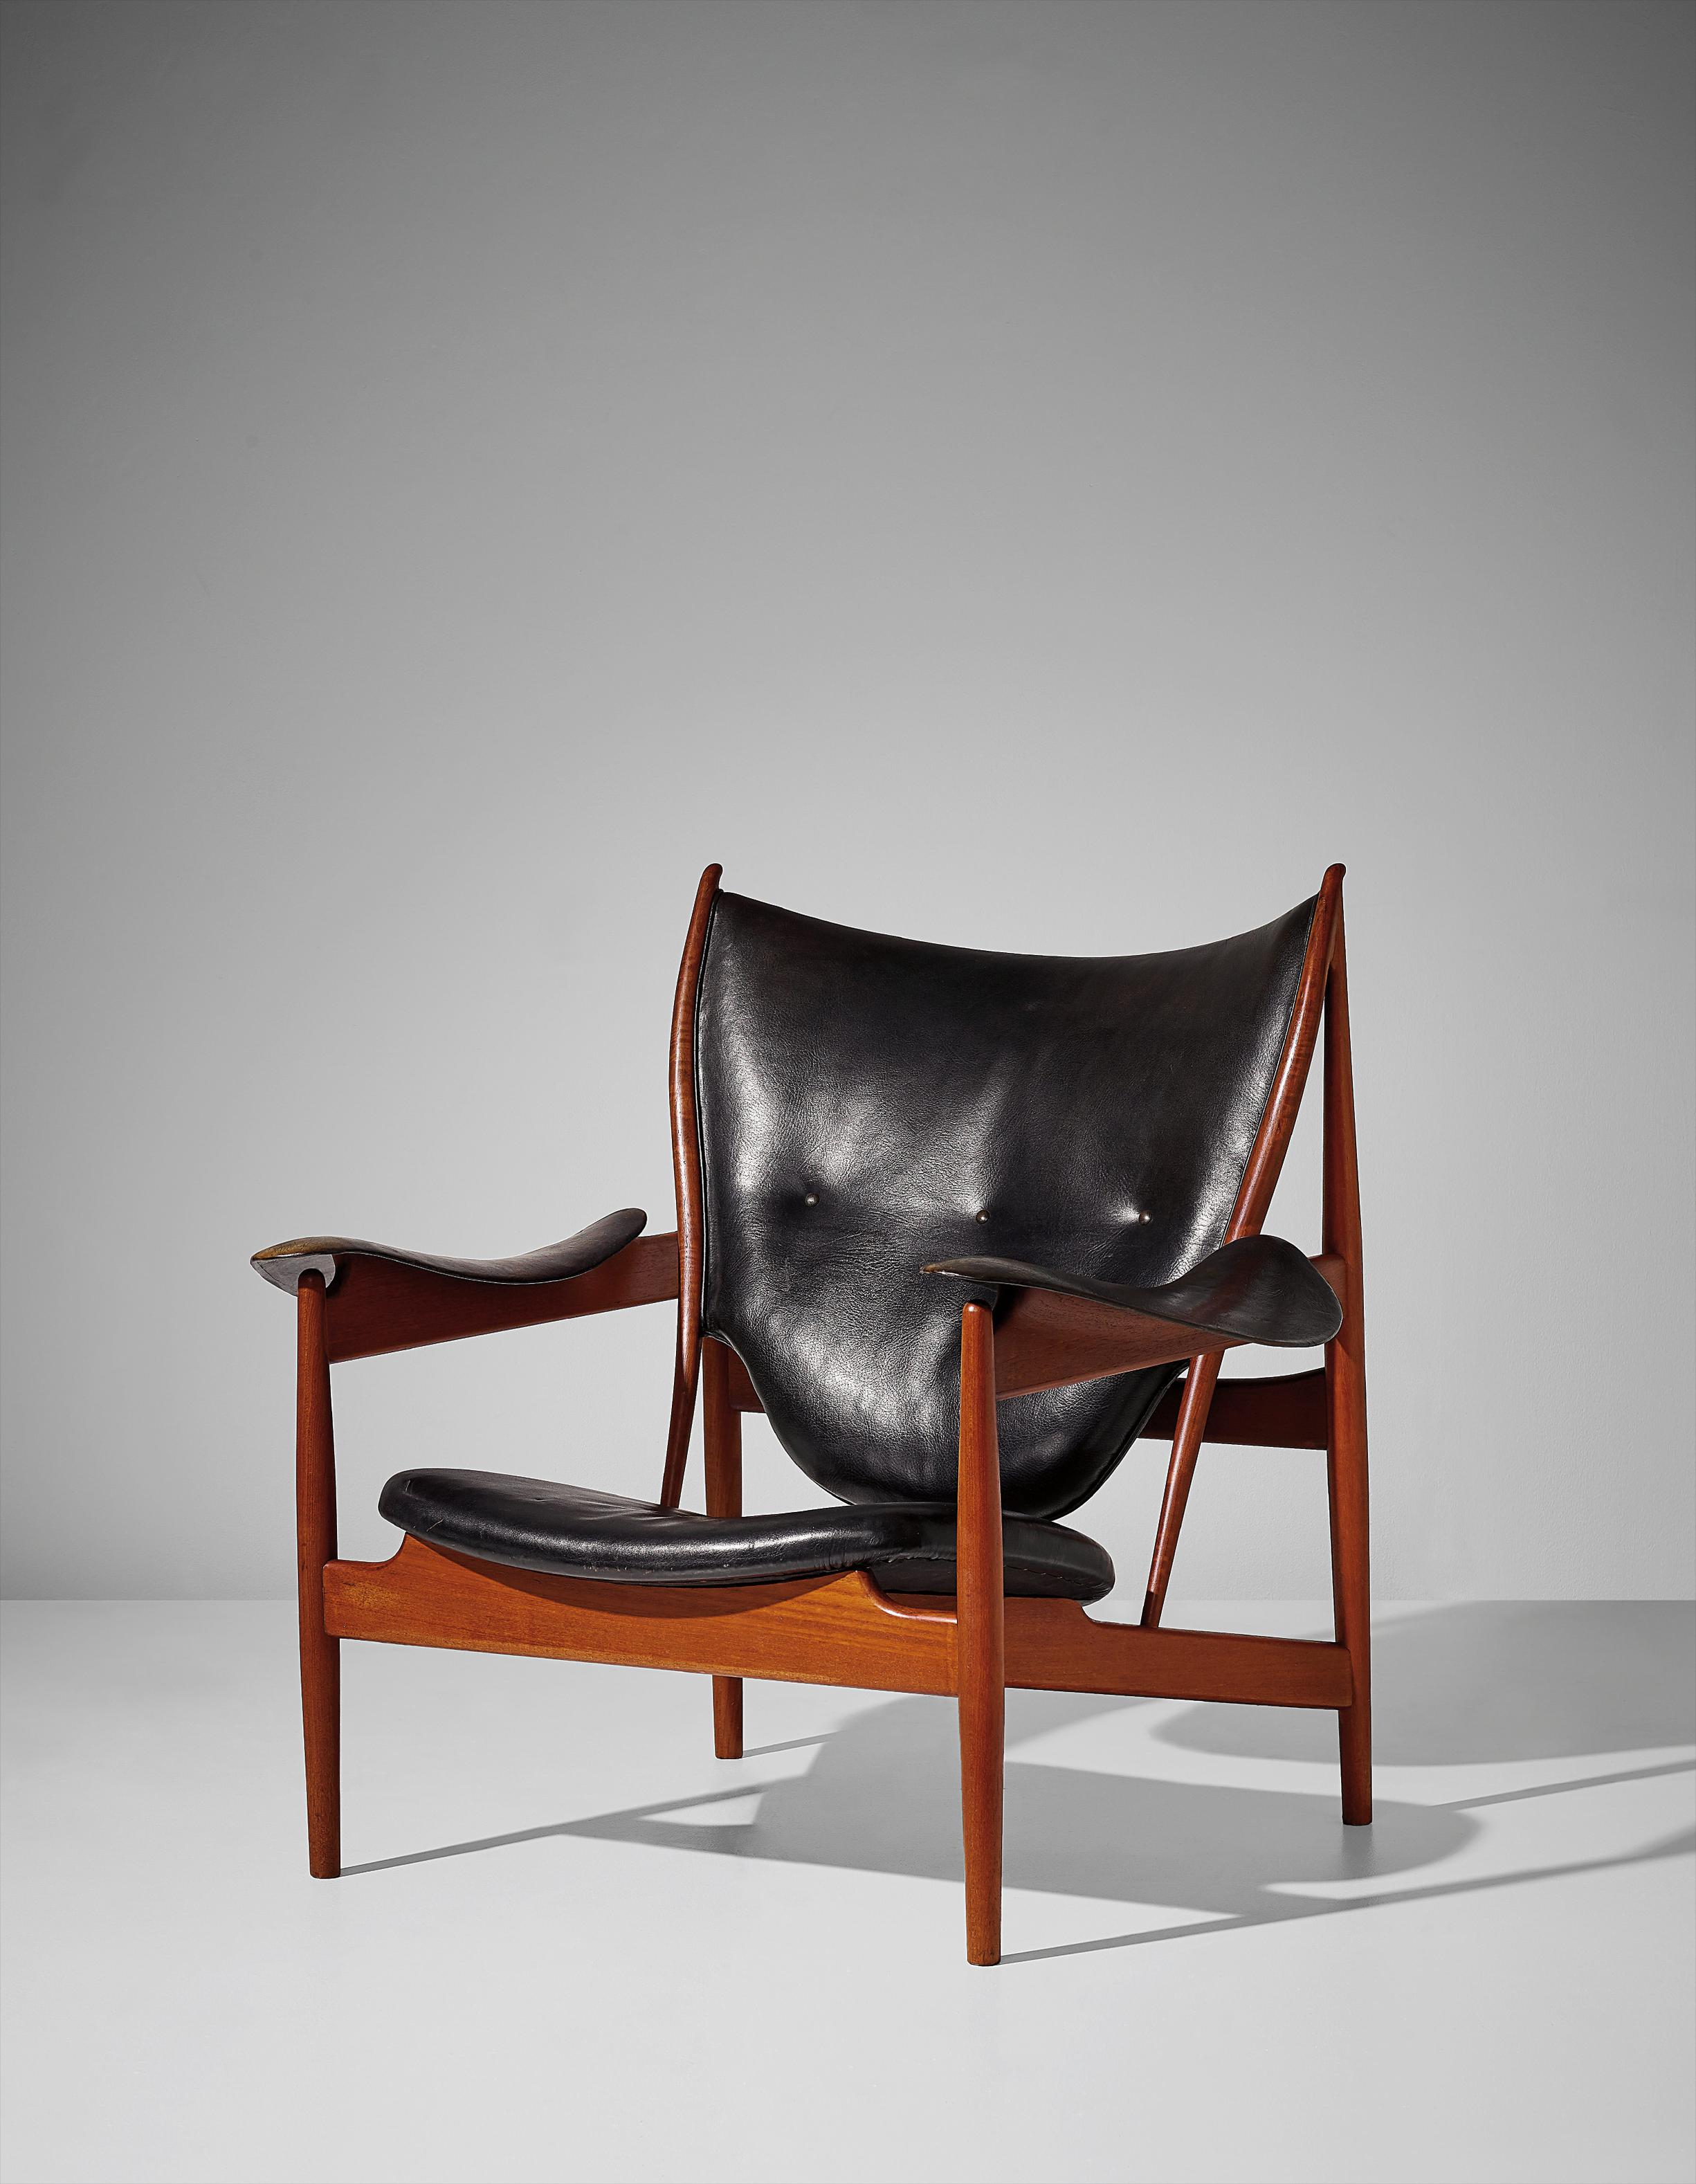 Finn Juhl-Important And Early Chieftain Armchair, Model No. Fj 49 A-1949